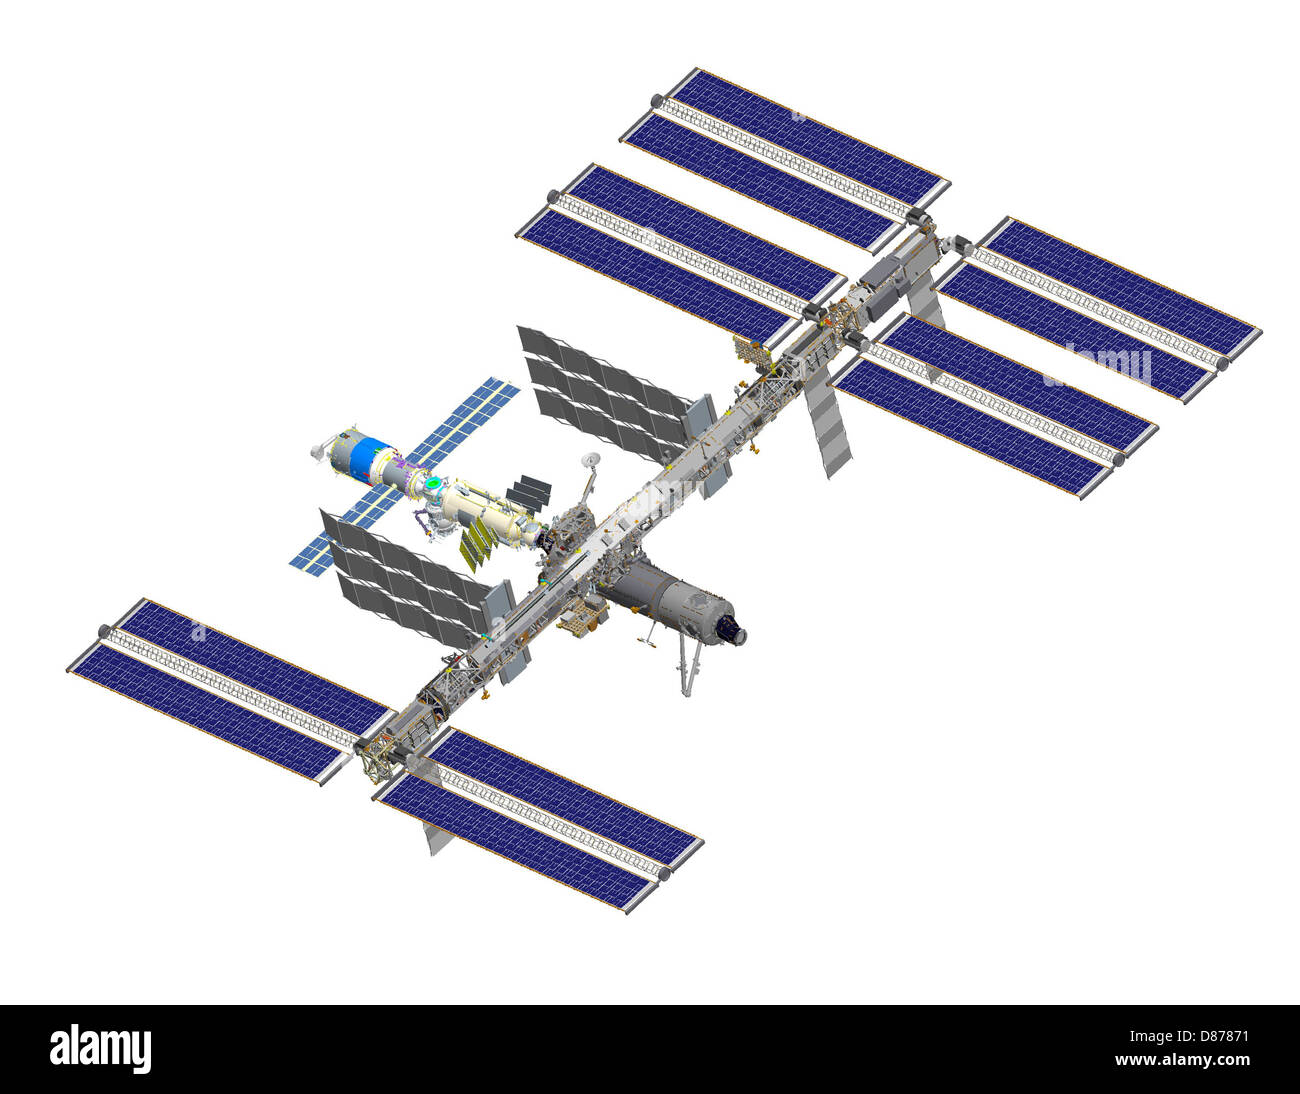 ISS after STS-120 (computer rendering of August 2006).jpg - Stock Image